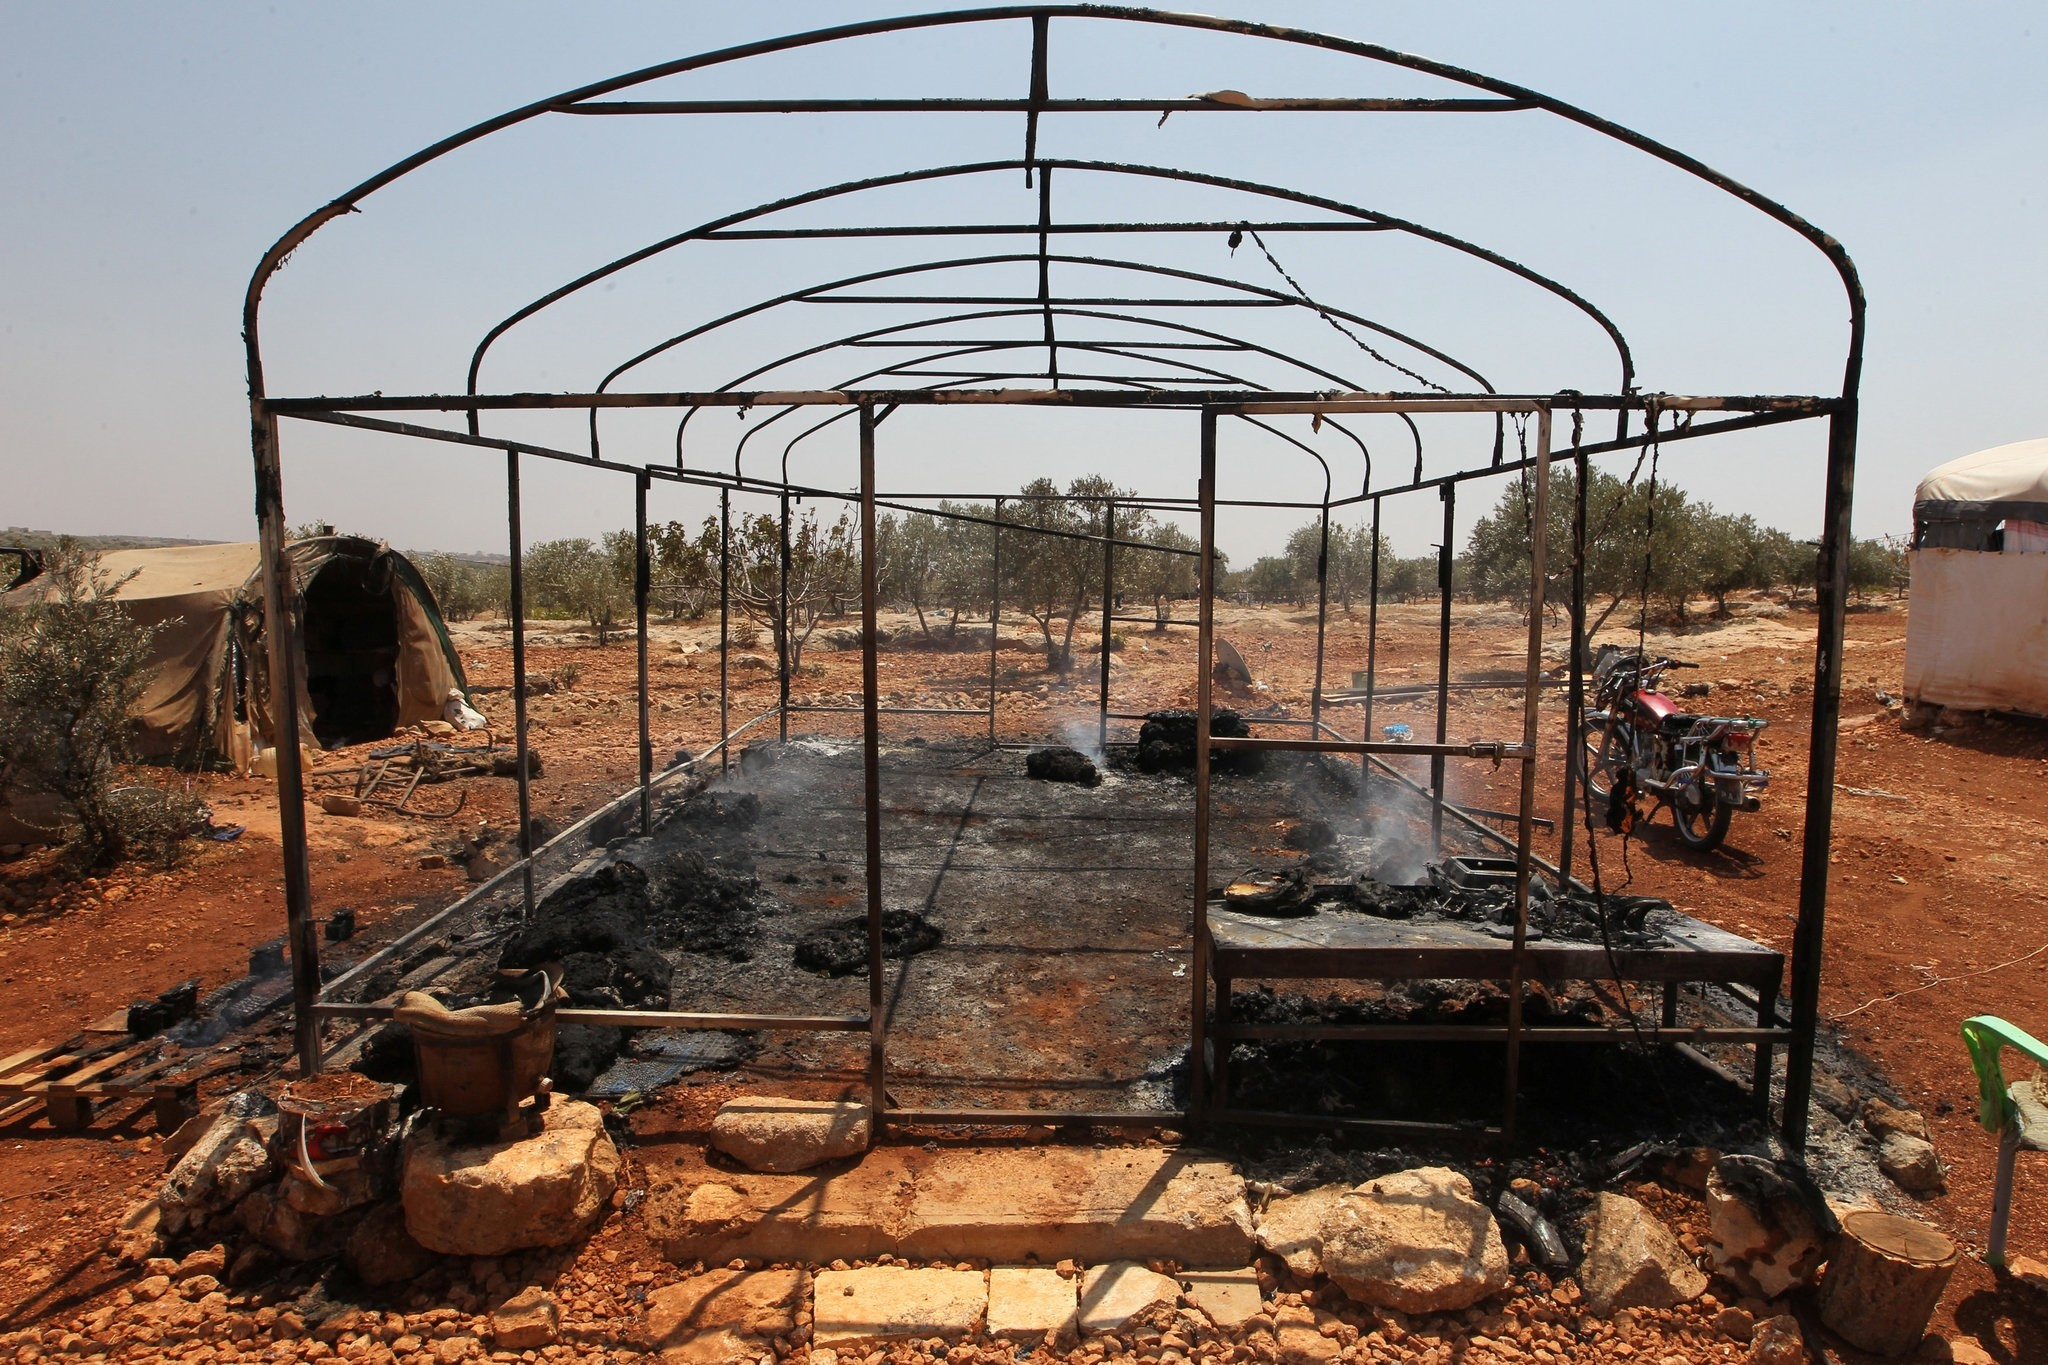 A burnt tent for displaced people is pictured after airstrikes on the outskirts of the rebel-held town of Atareb in Aleppo province, Syria August 4, 2016. (REUTERS Photo)